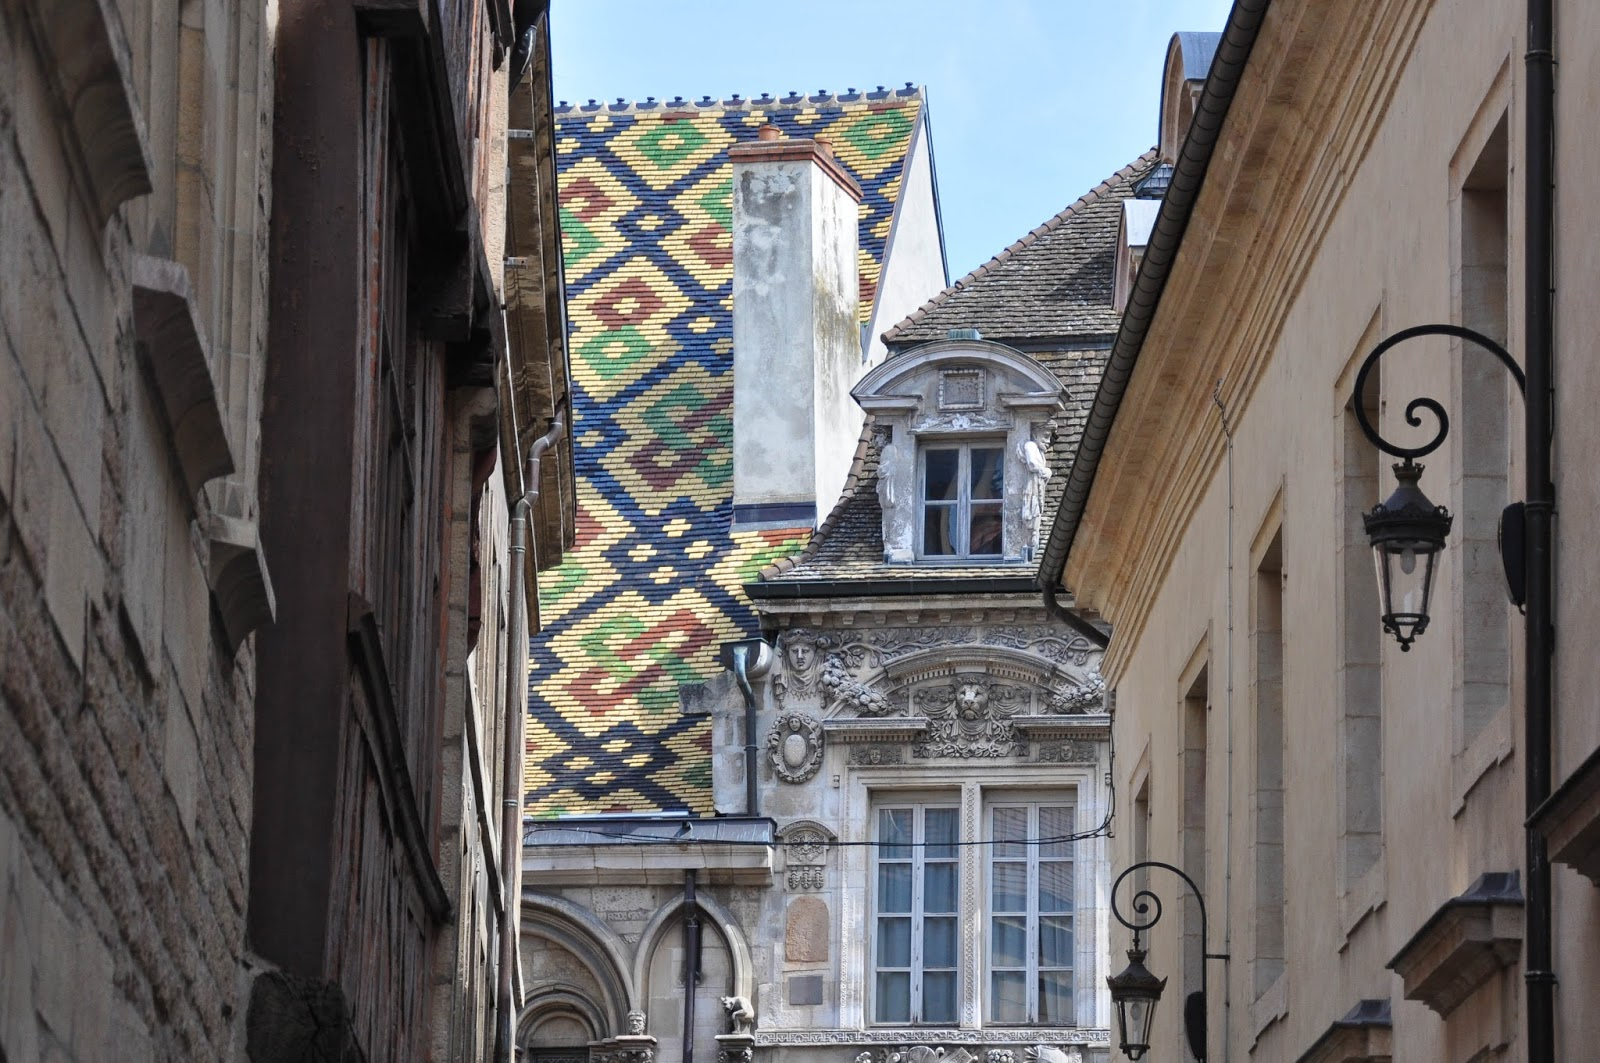 A glimpse of a roof with a colourful geometric pattern, Dijon, Burgundy, France